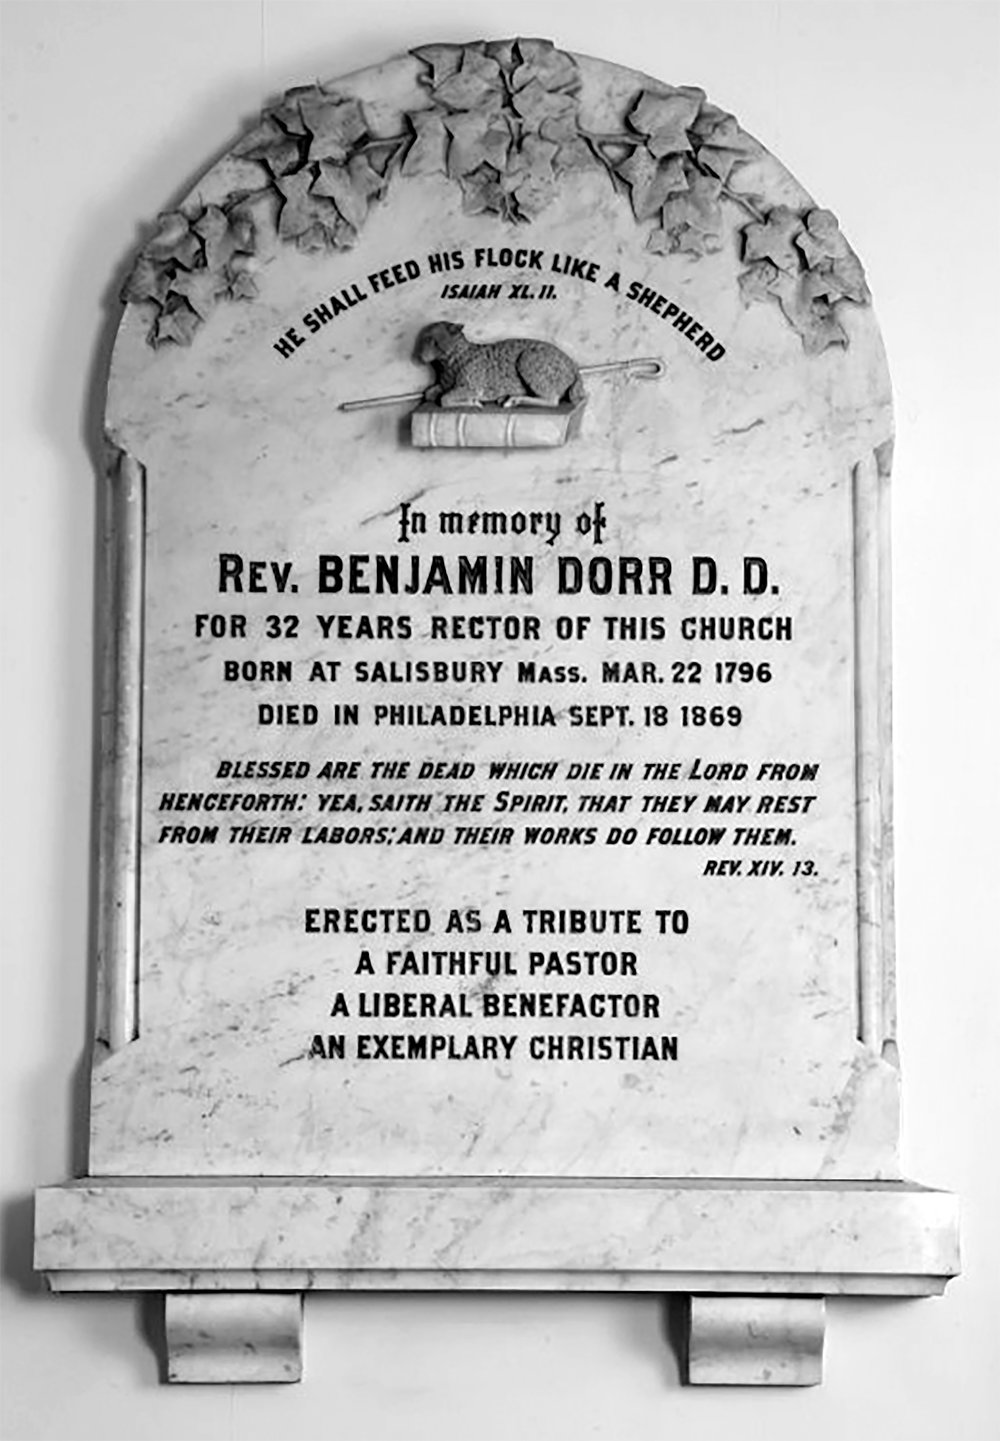 Memorial to Rev. Benjamin Dorr. Courtesy of Philadelphia's Christ Church. Photo by Will Brown.